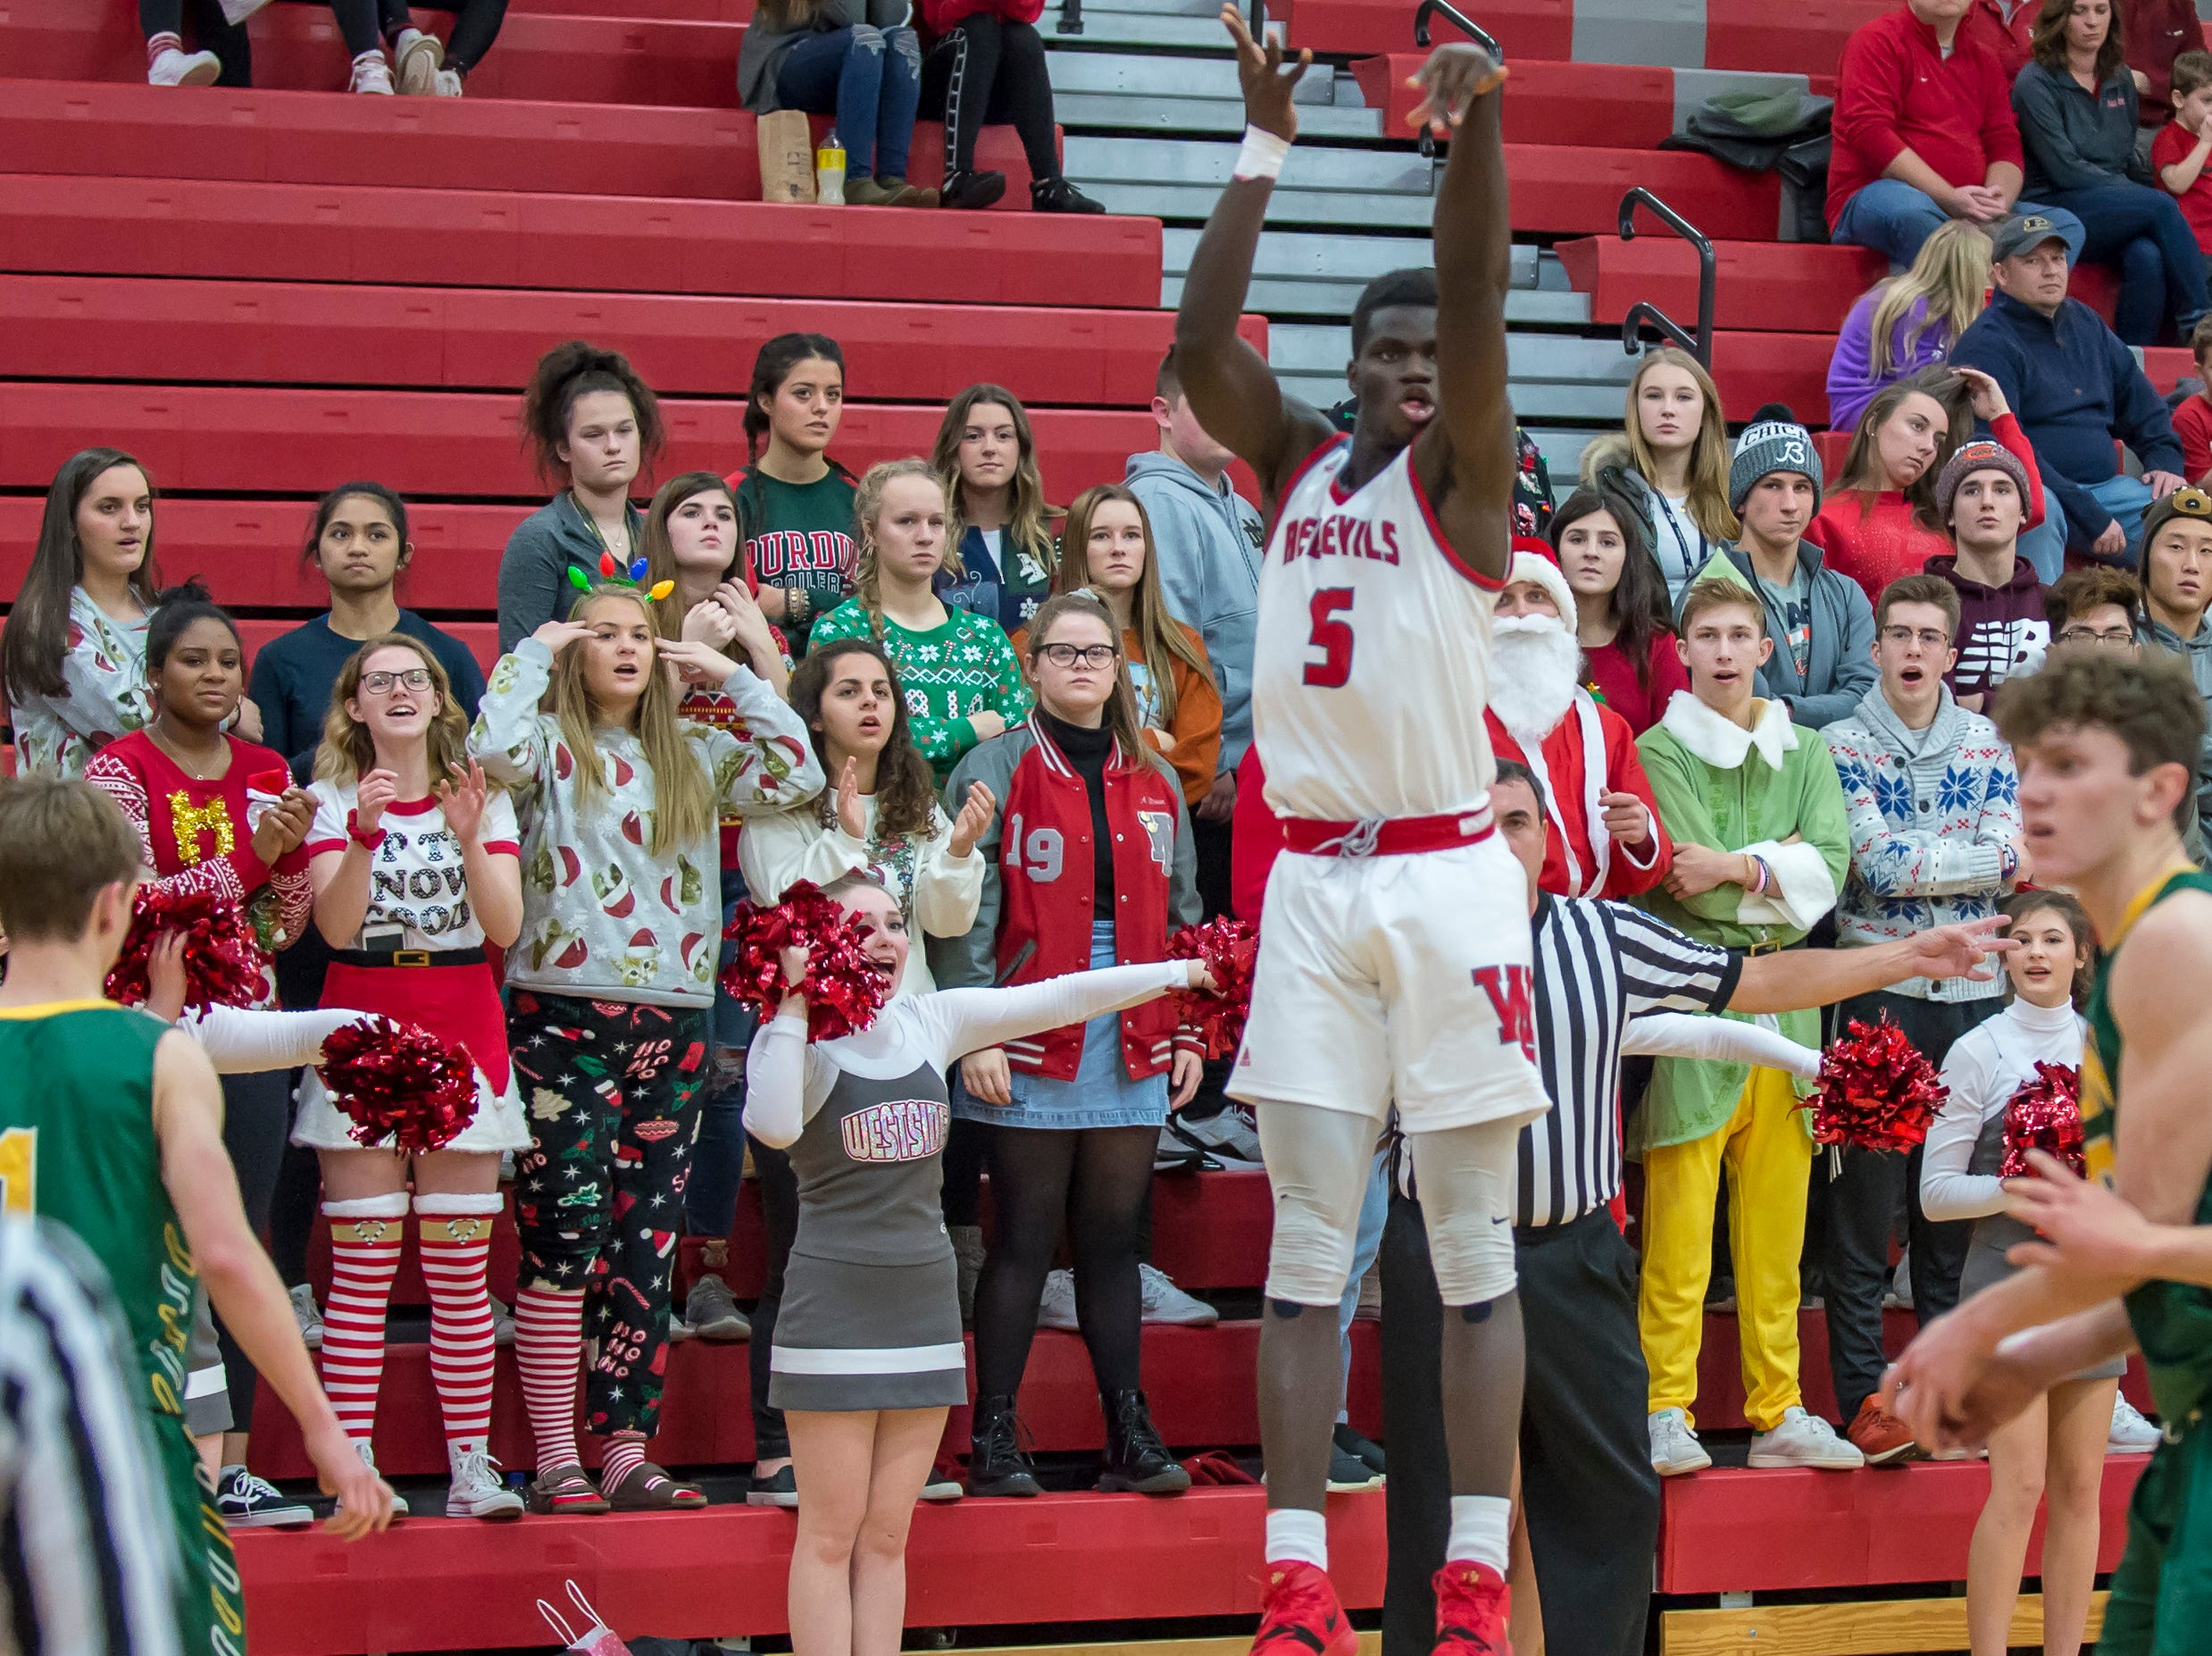 Action from the Benton Central at West Lafayette basketball game on December 14, 2018 - Nelson Mbongo; WL Student section, Santa Claus